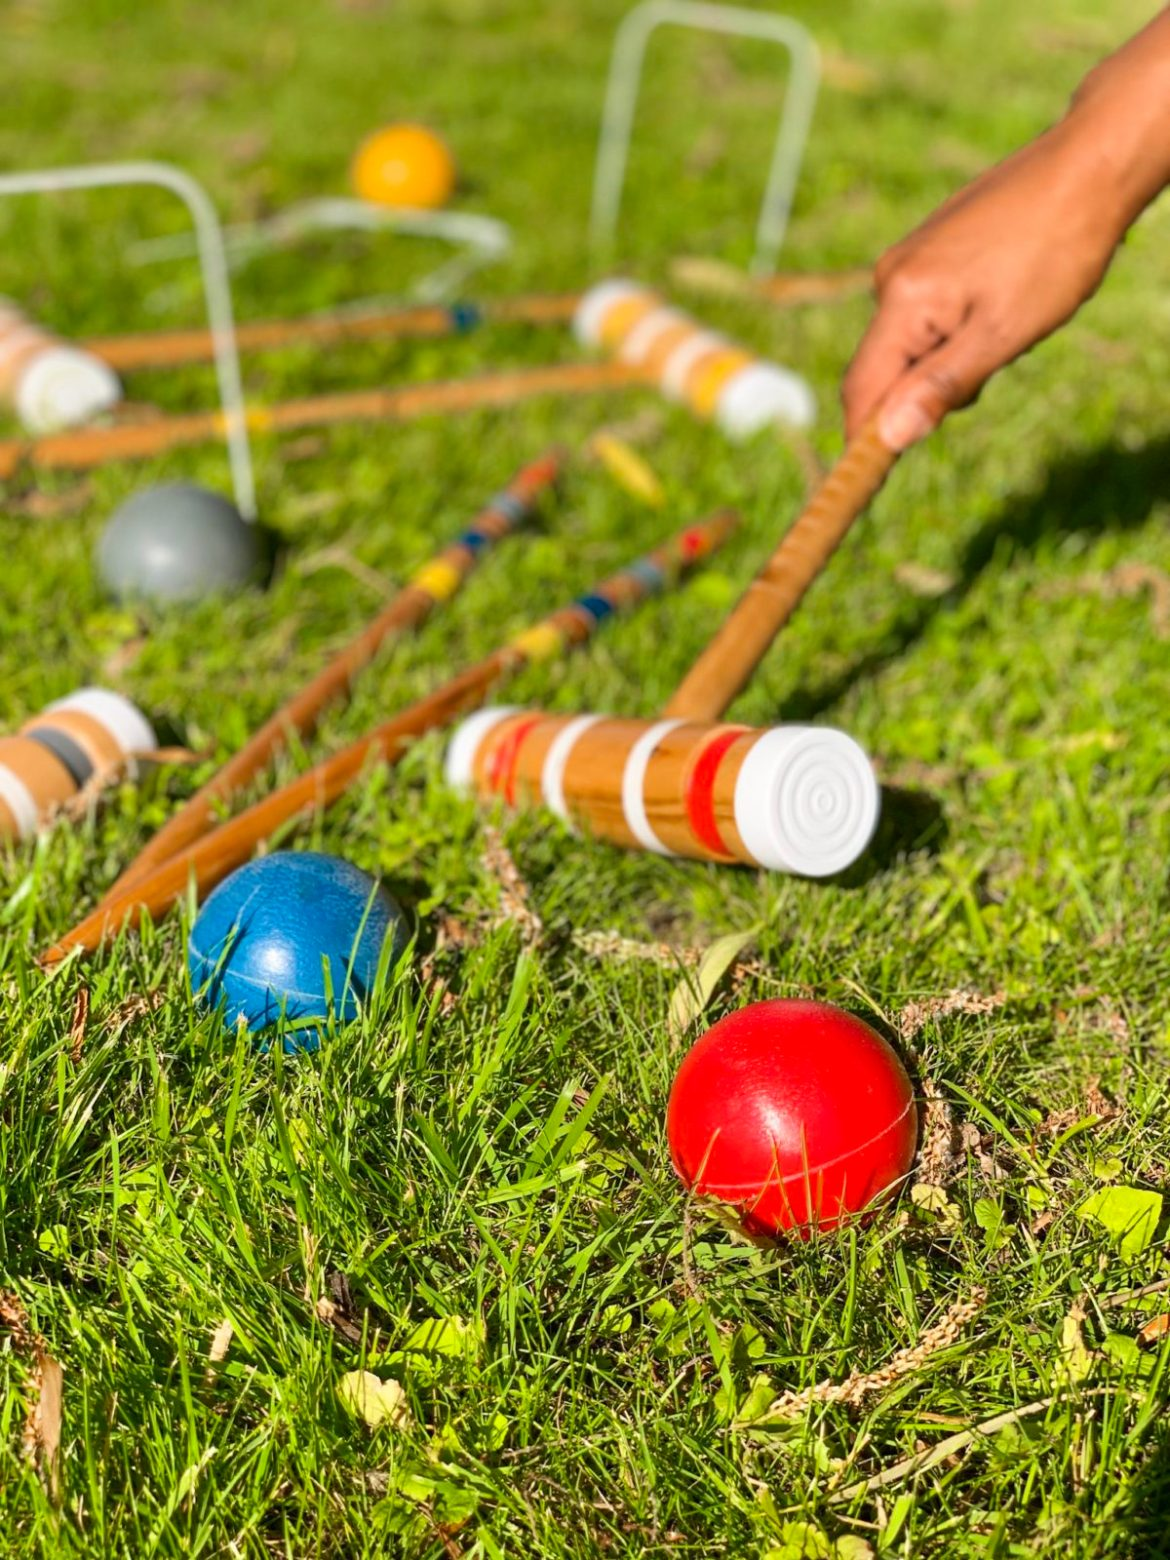 How to Play Lawn Games